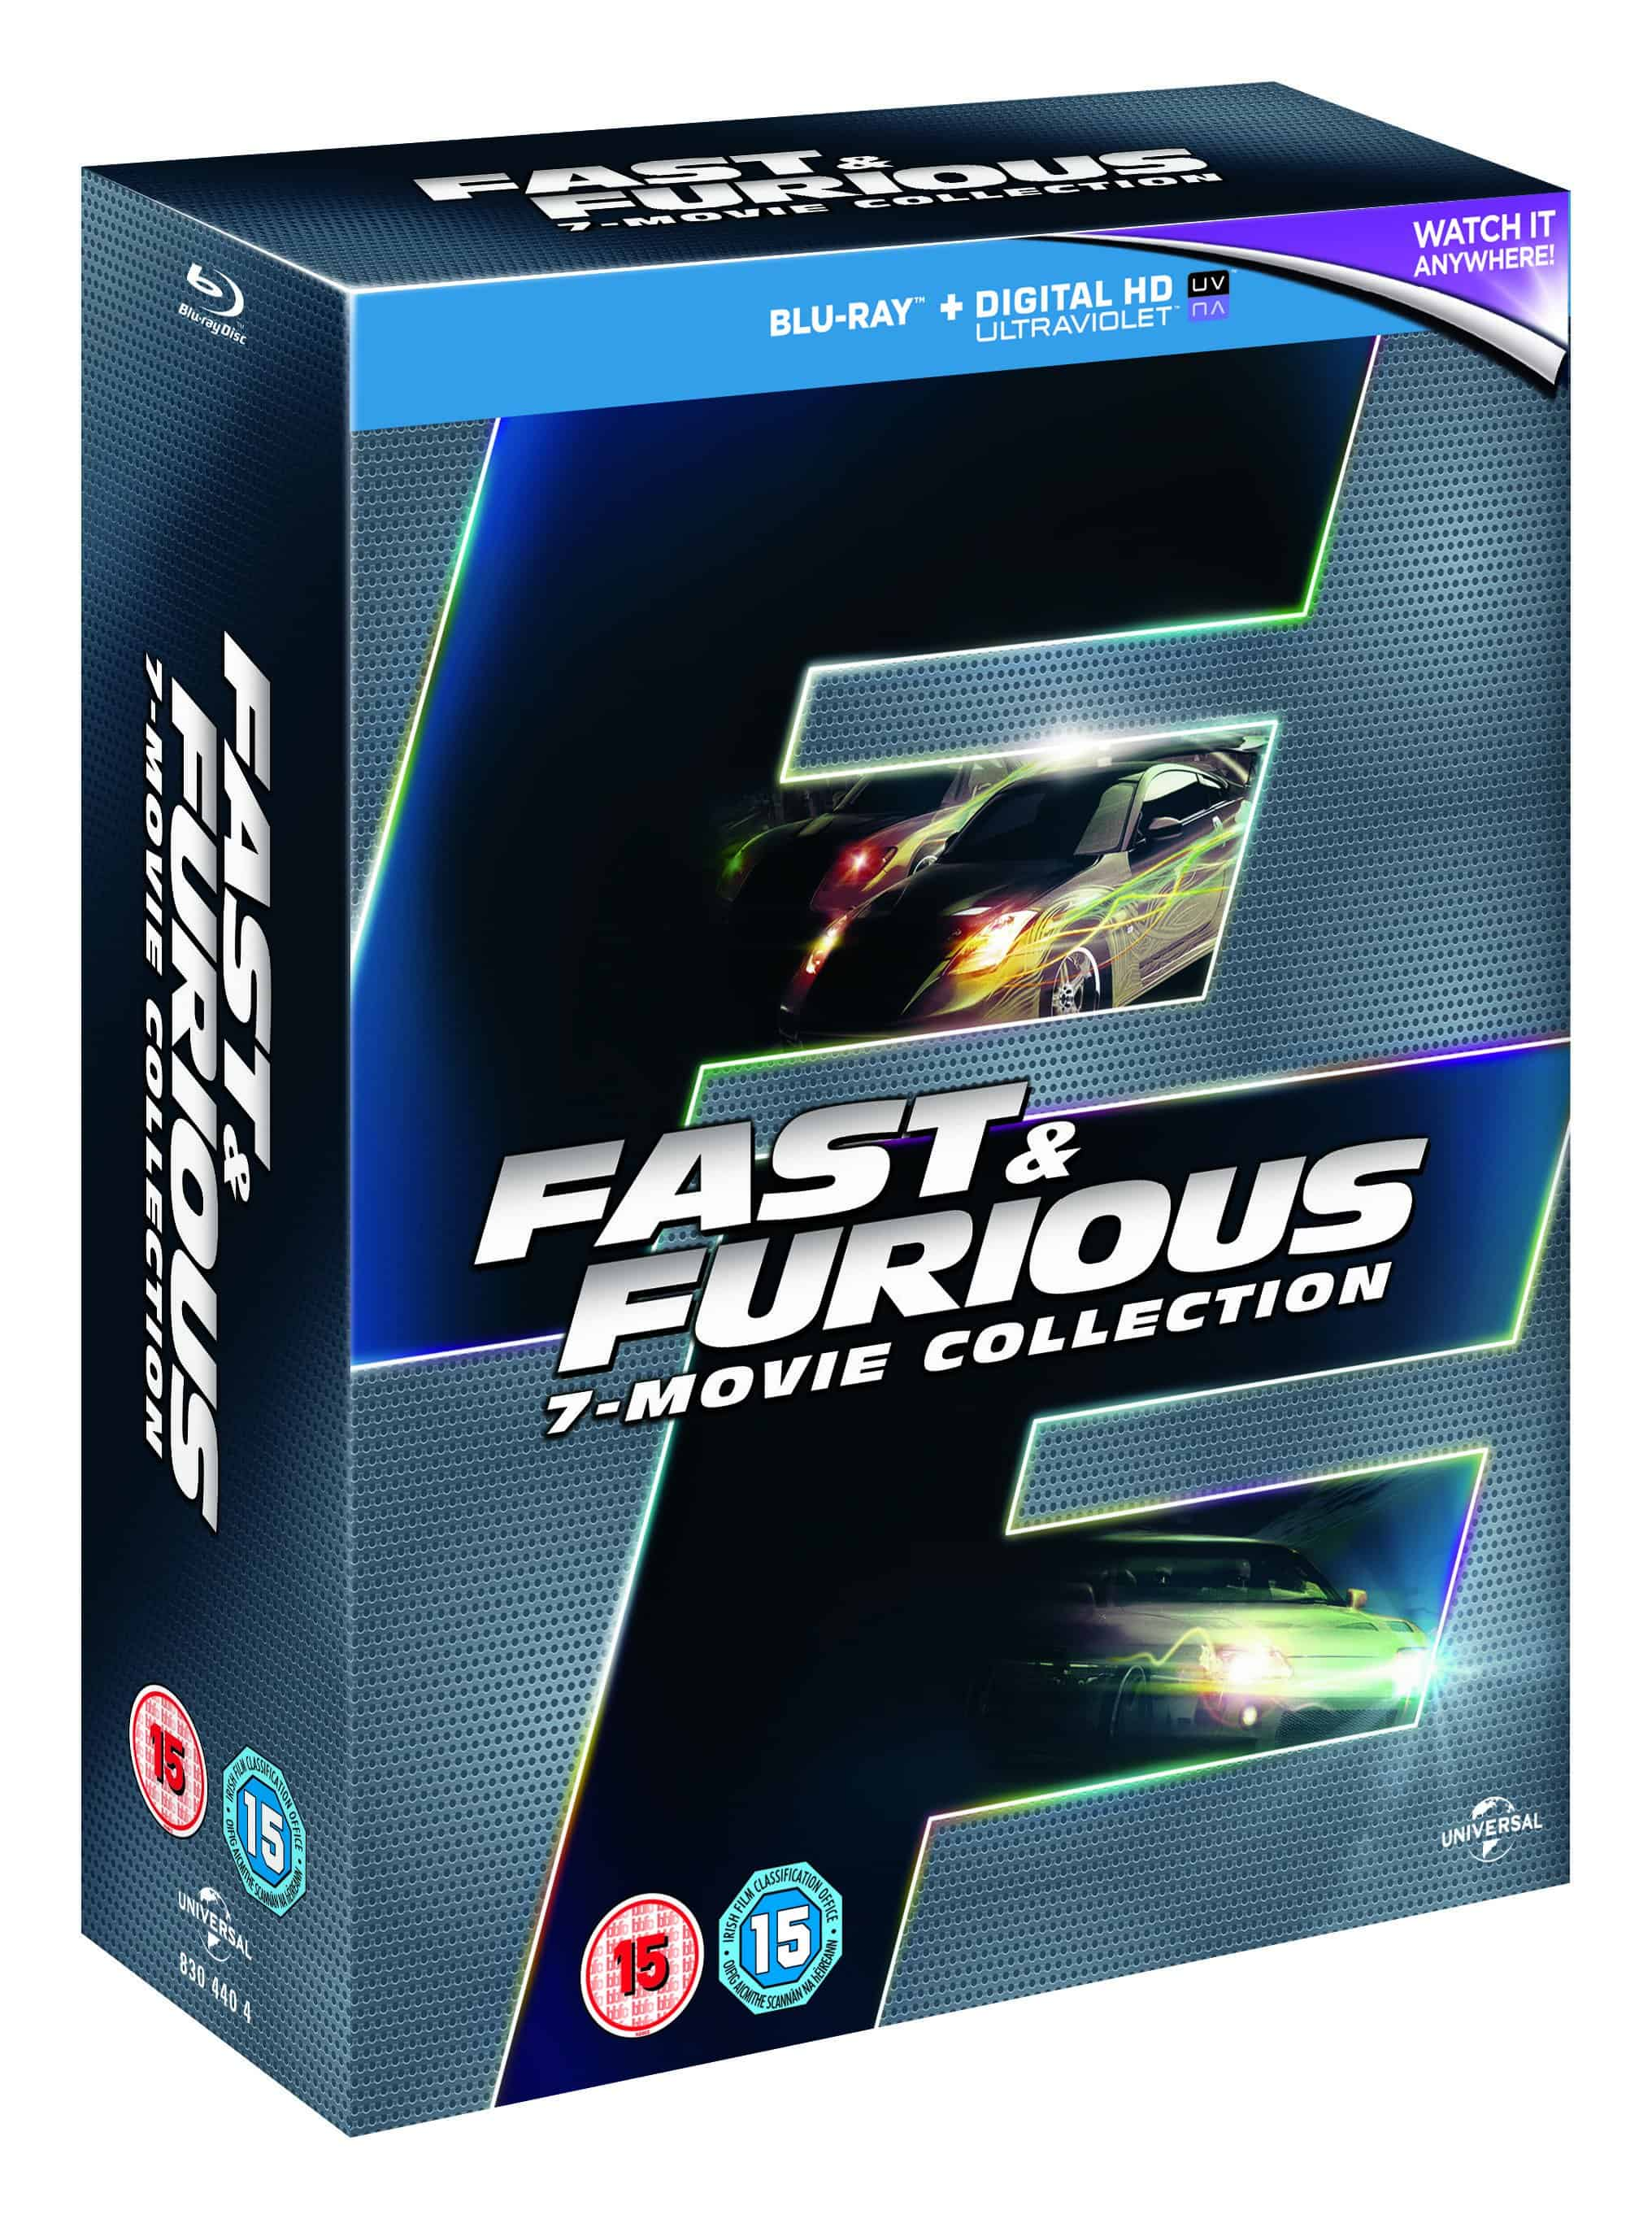 win fast and furious 7 movie collection on blu ray. Black Bedroom Furniture Sets. Home Design Ideas